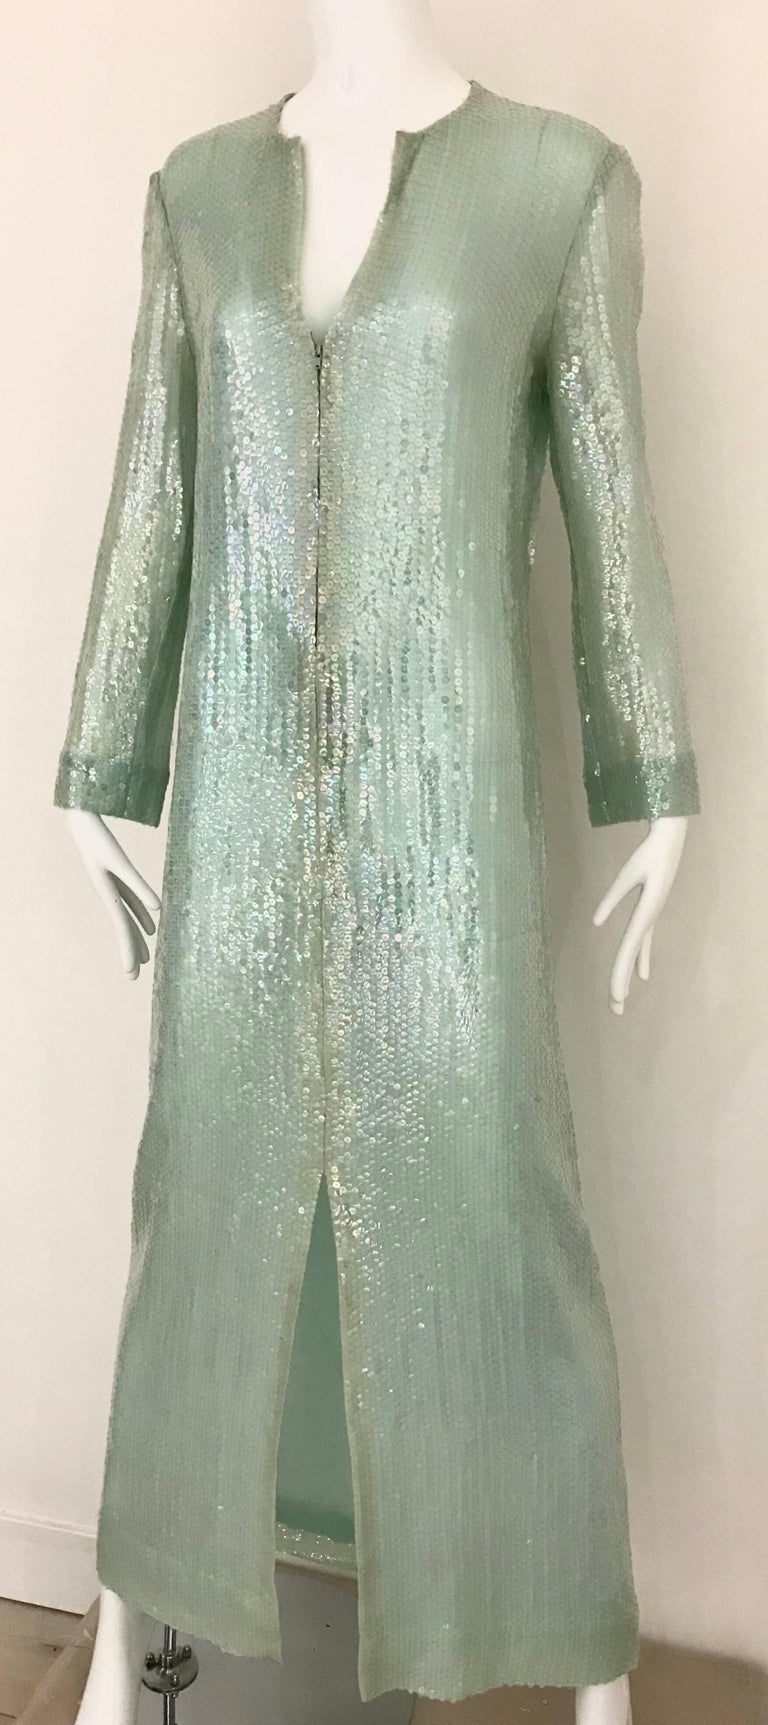 Vintage 70s Halston light green iridescent sequin caftan dress with zipper and belt. Dress has zipper in the middle and thin belt. Size 6/ Medium Bust: 38 inches/ Waist: 34 inches/ Hip: 37 inches Dress Length: 57 inches Arm length from shoulder- 22